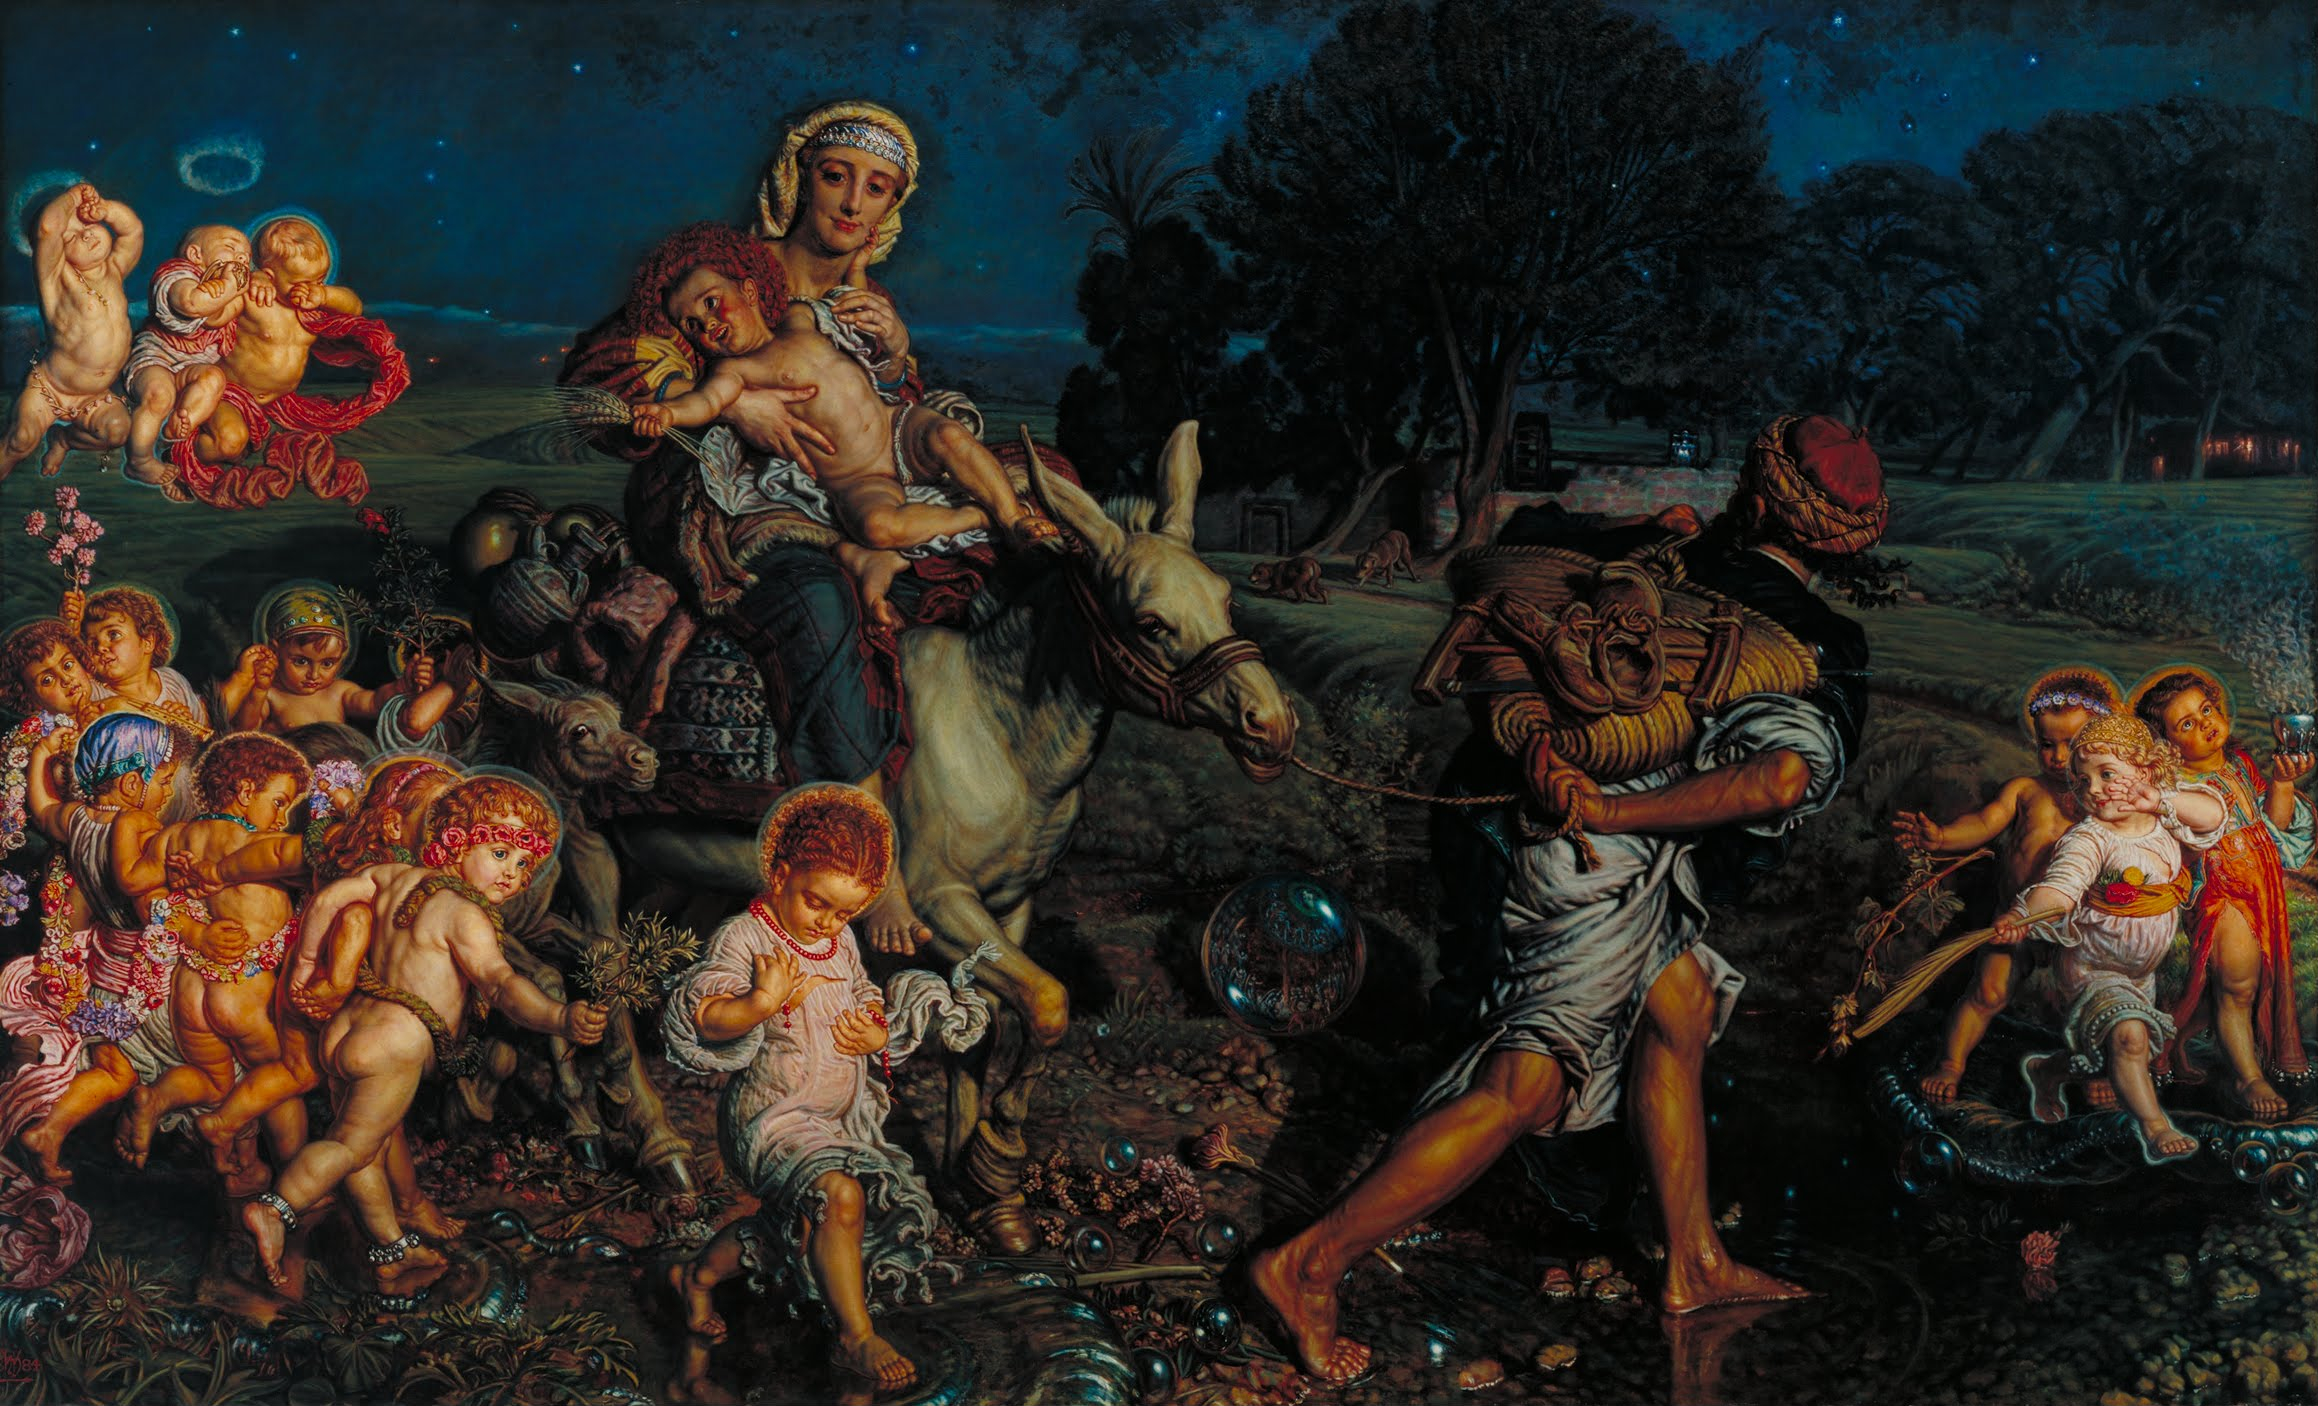 Triumph of the Innocents by William Holman Hunt, oil on canvas circa 1883. Currently in the collection of the Tate Britain (known from 1897 to 1932 as the National Gallery of British Art and from 1932 to 2000 as the Tate Gallery) on Millbank in the City of Westminster in London.